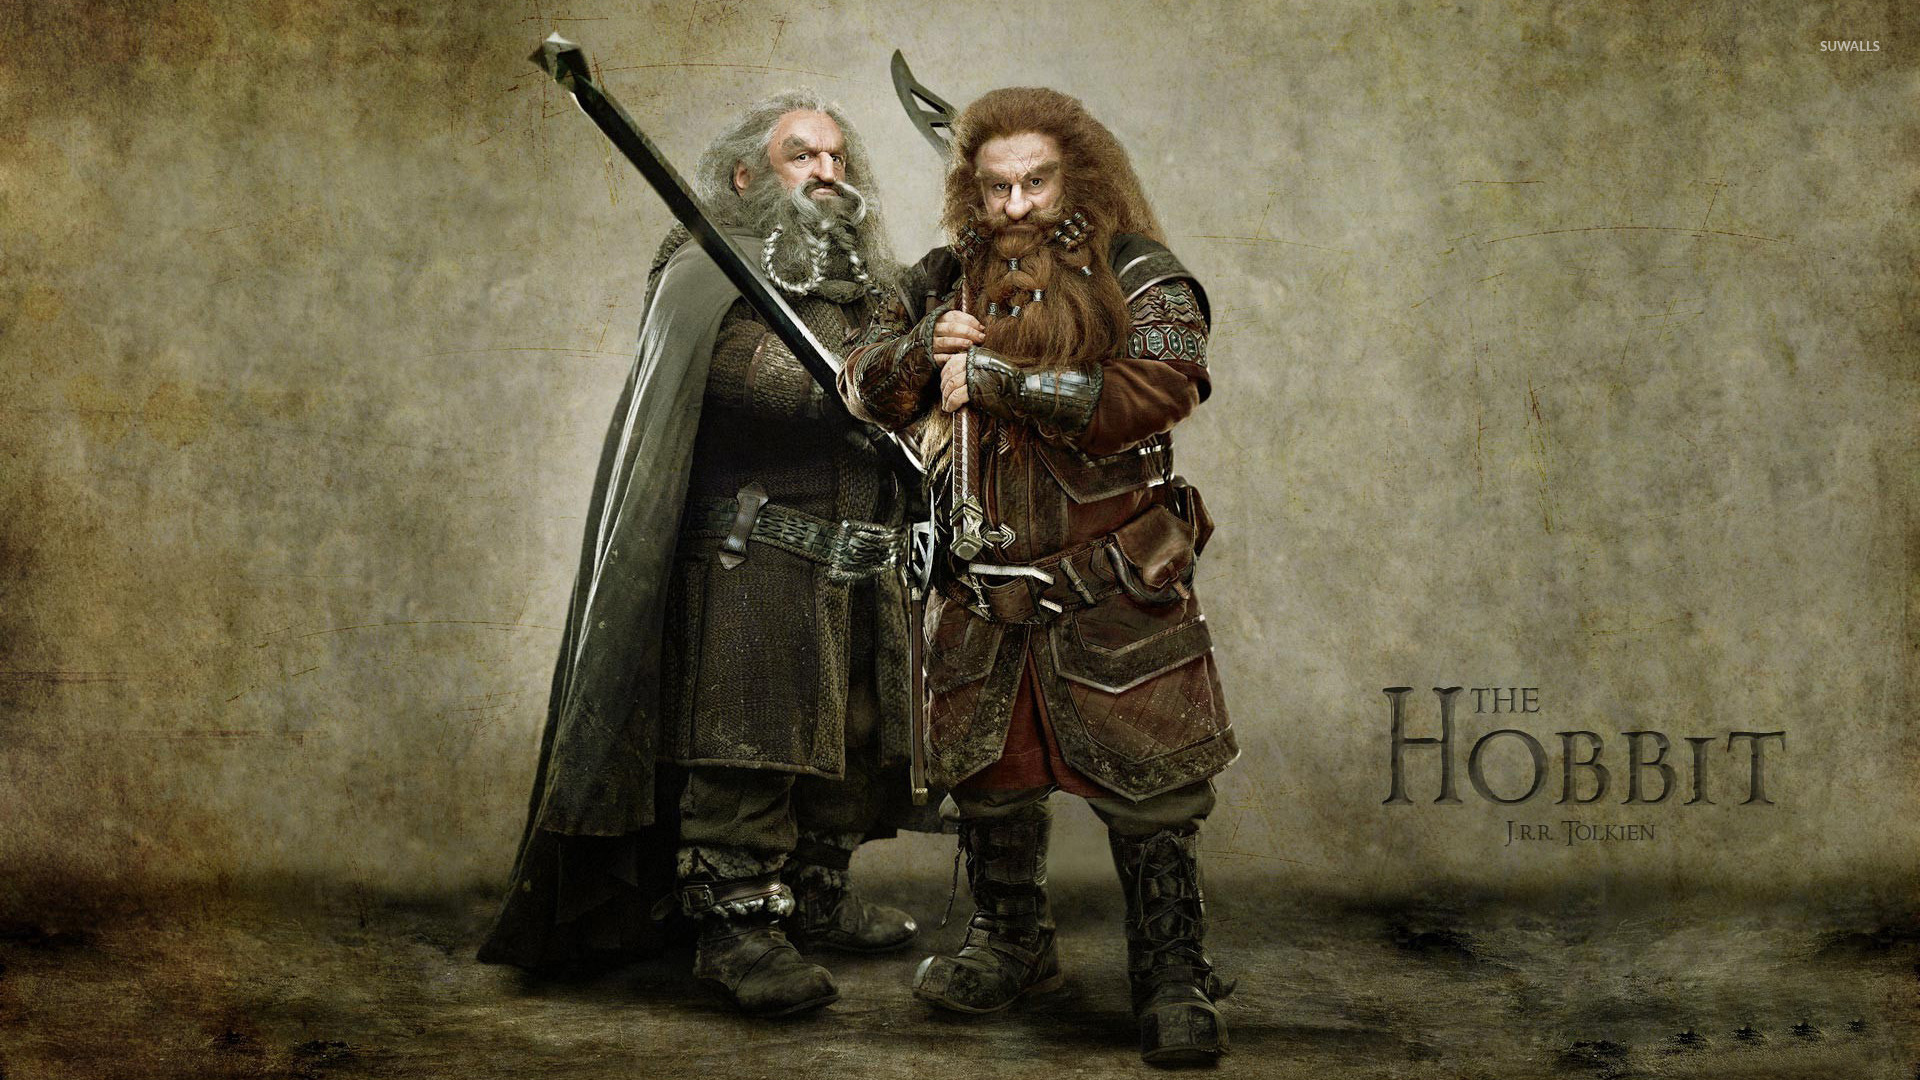 The Hobbit wallpaper   Movie wallpapers   11338 1920x1080